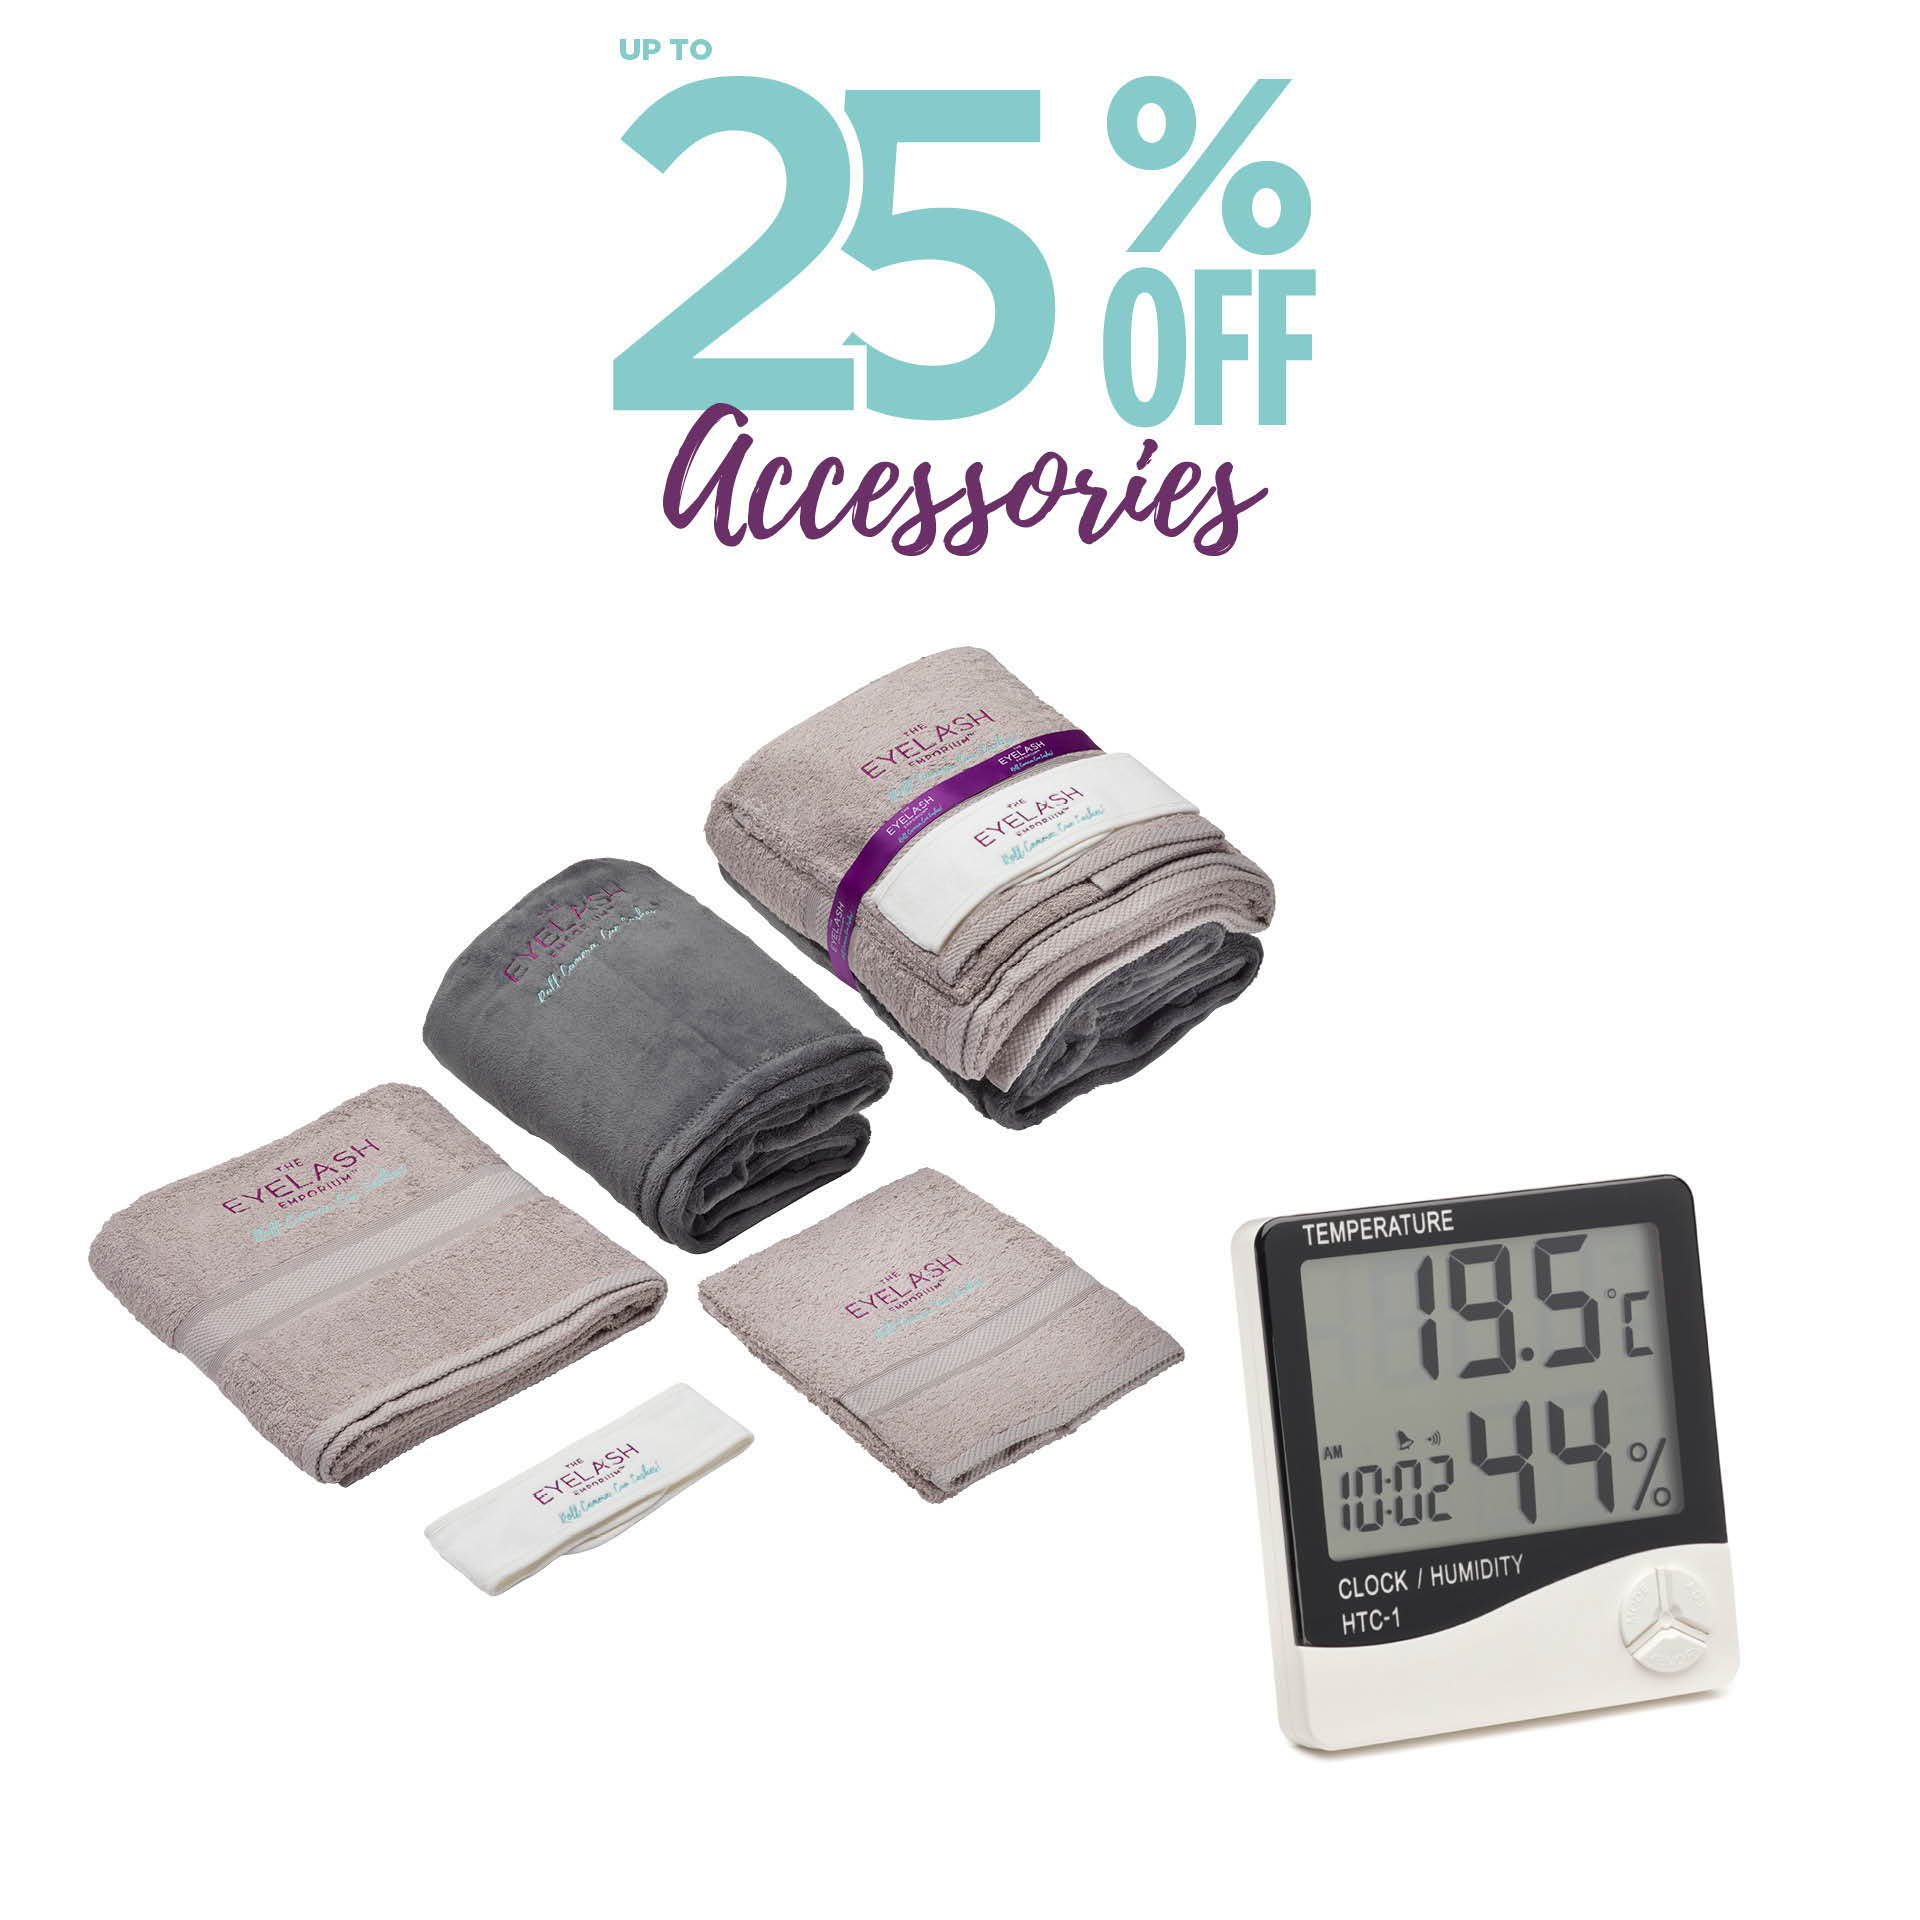 Up to 25% off accessories